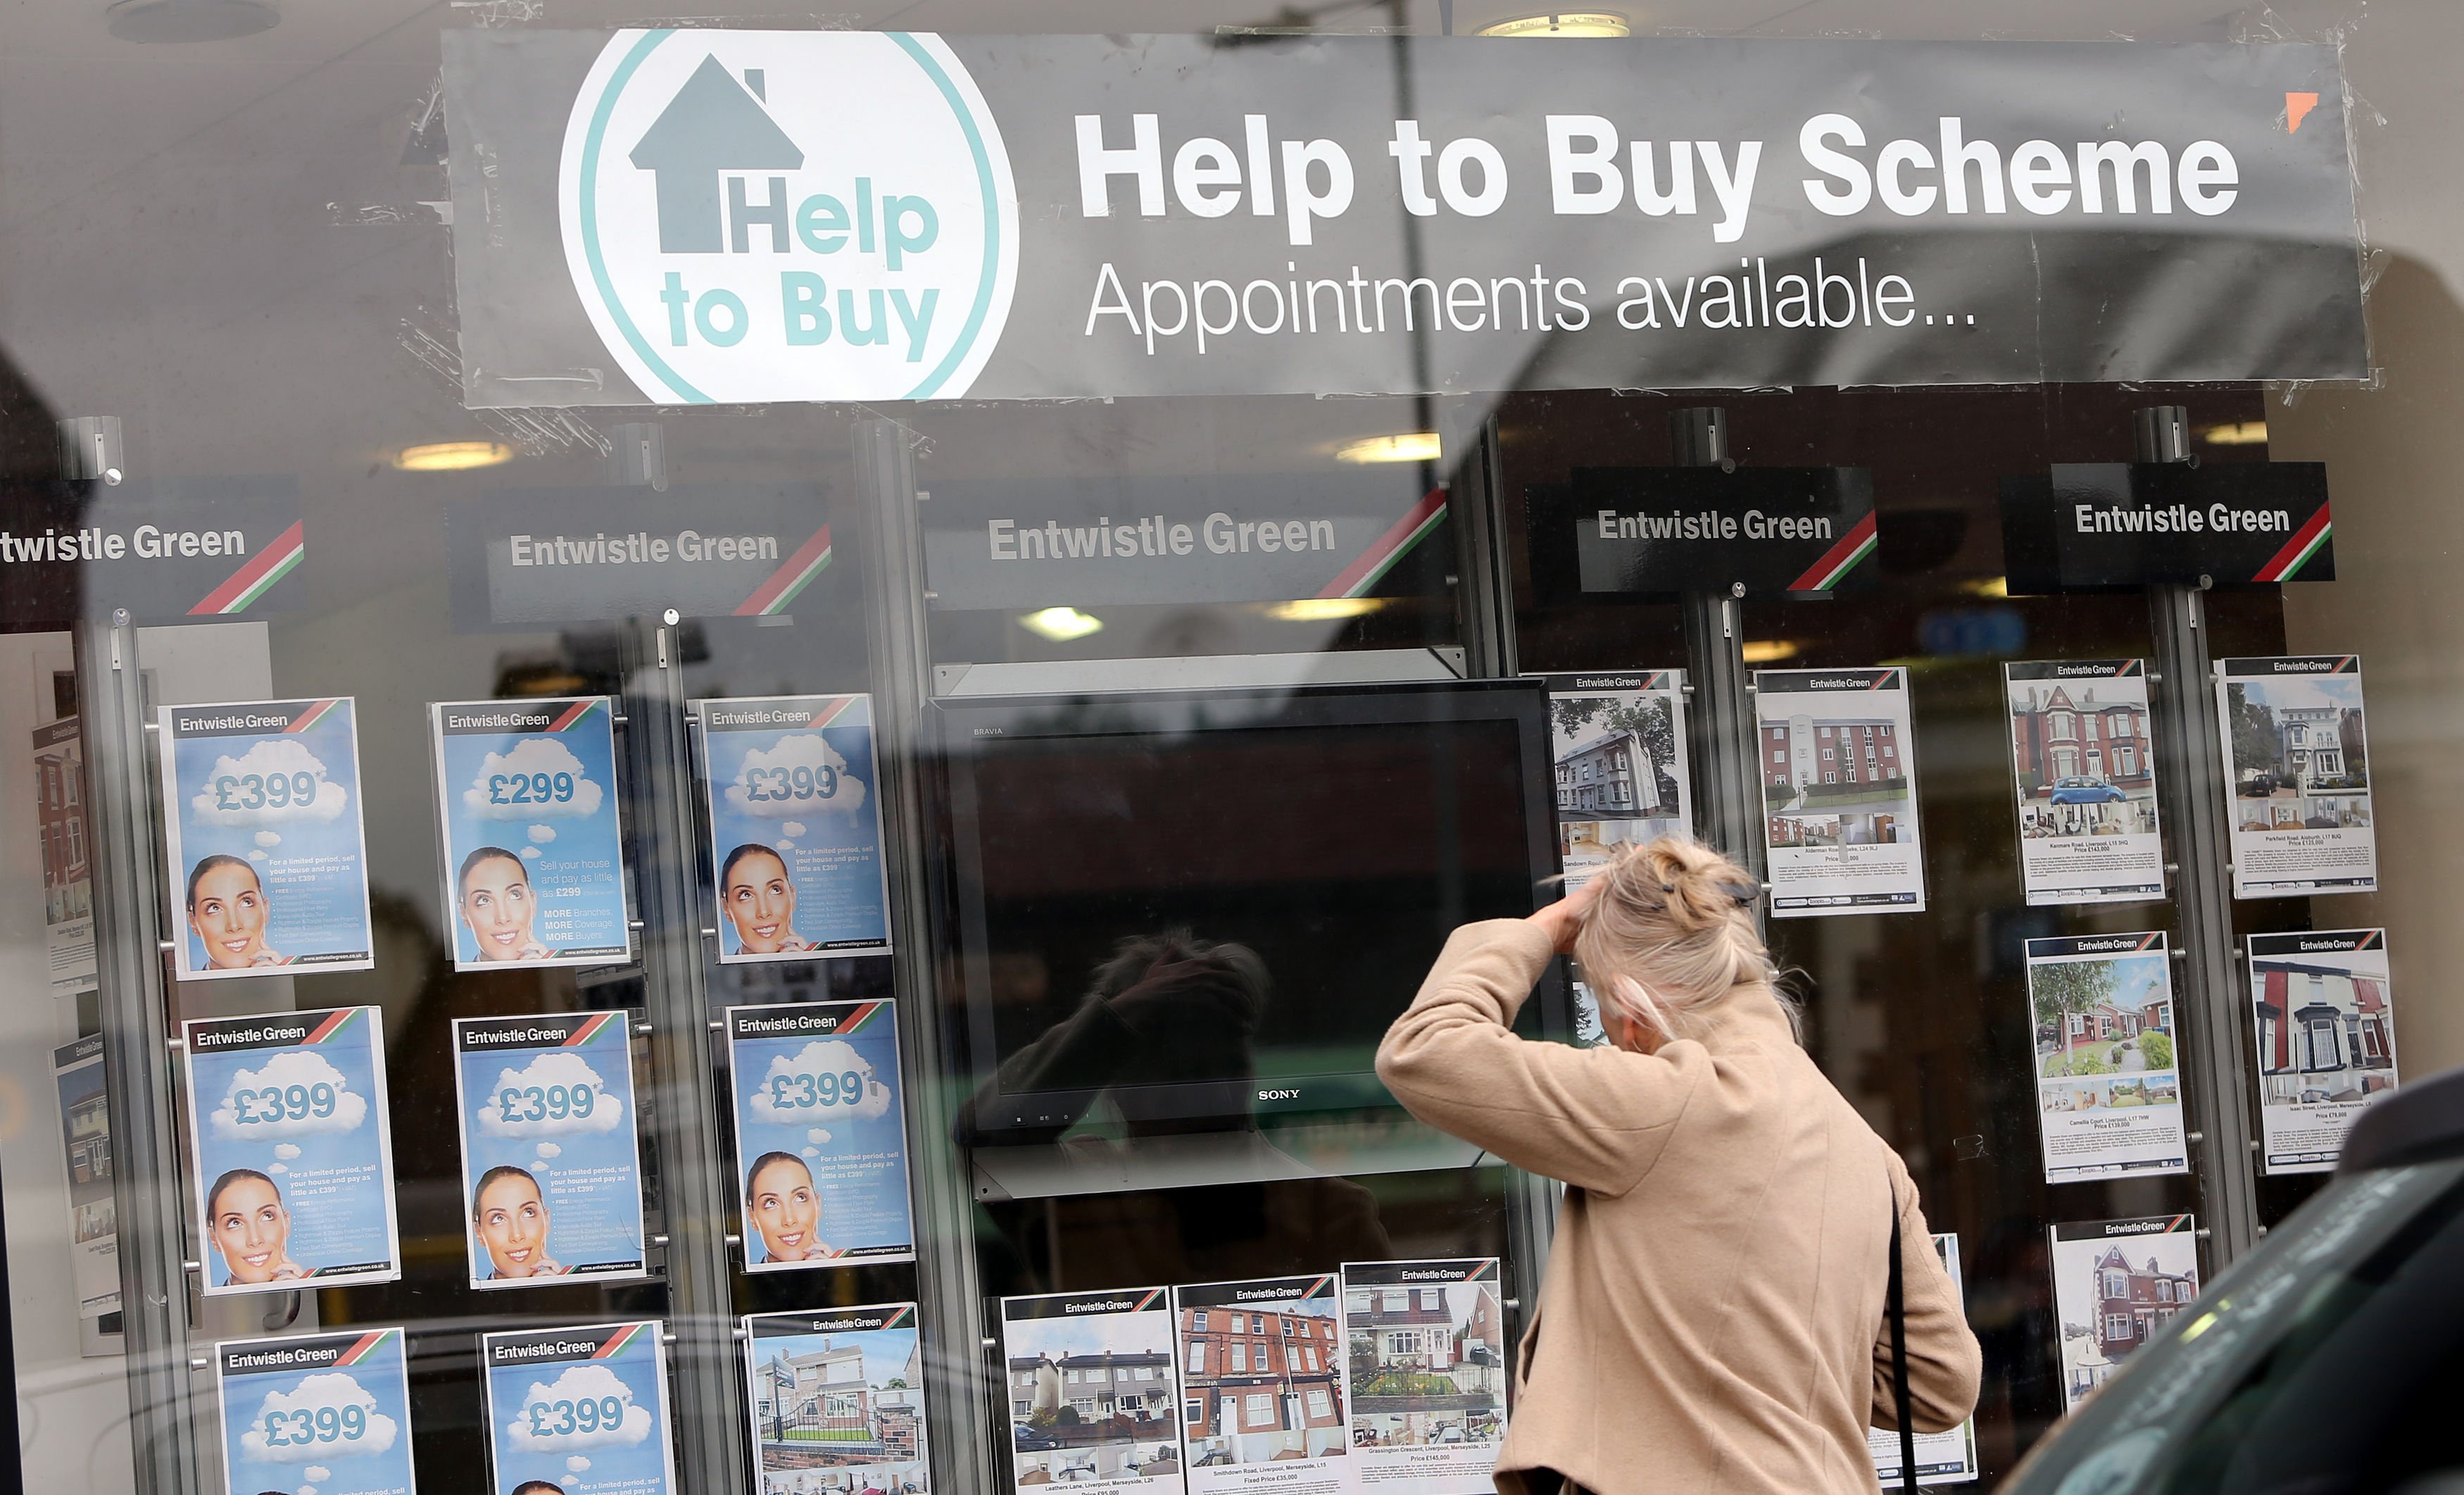 Thousands sign up for 'Help to Buy' home ownership